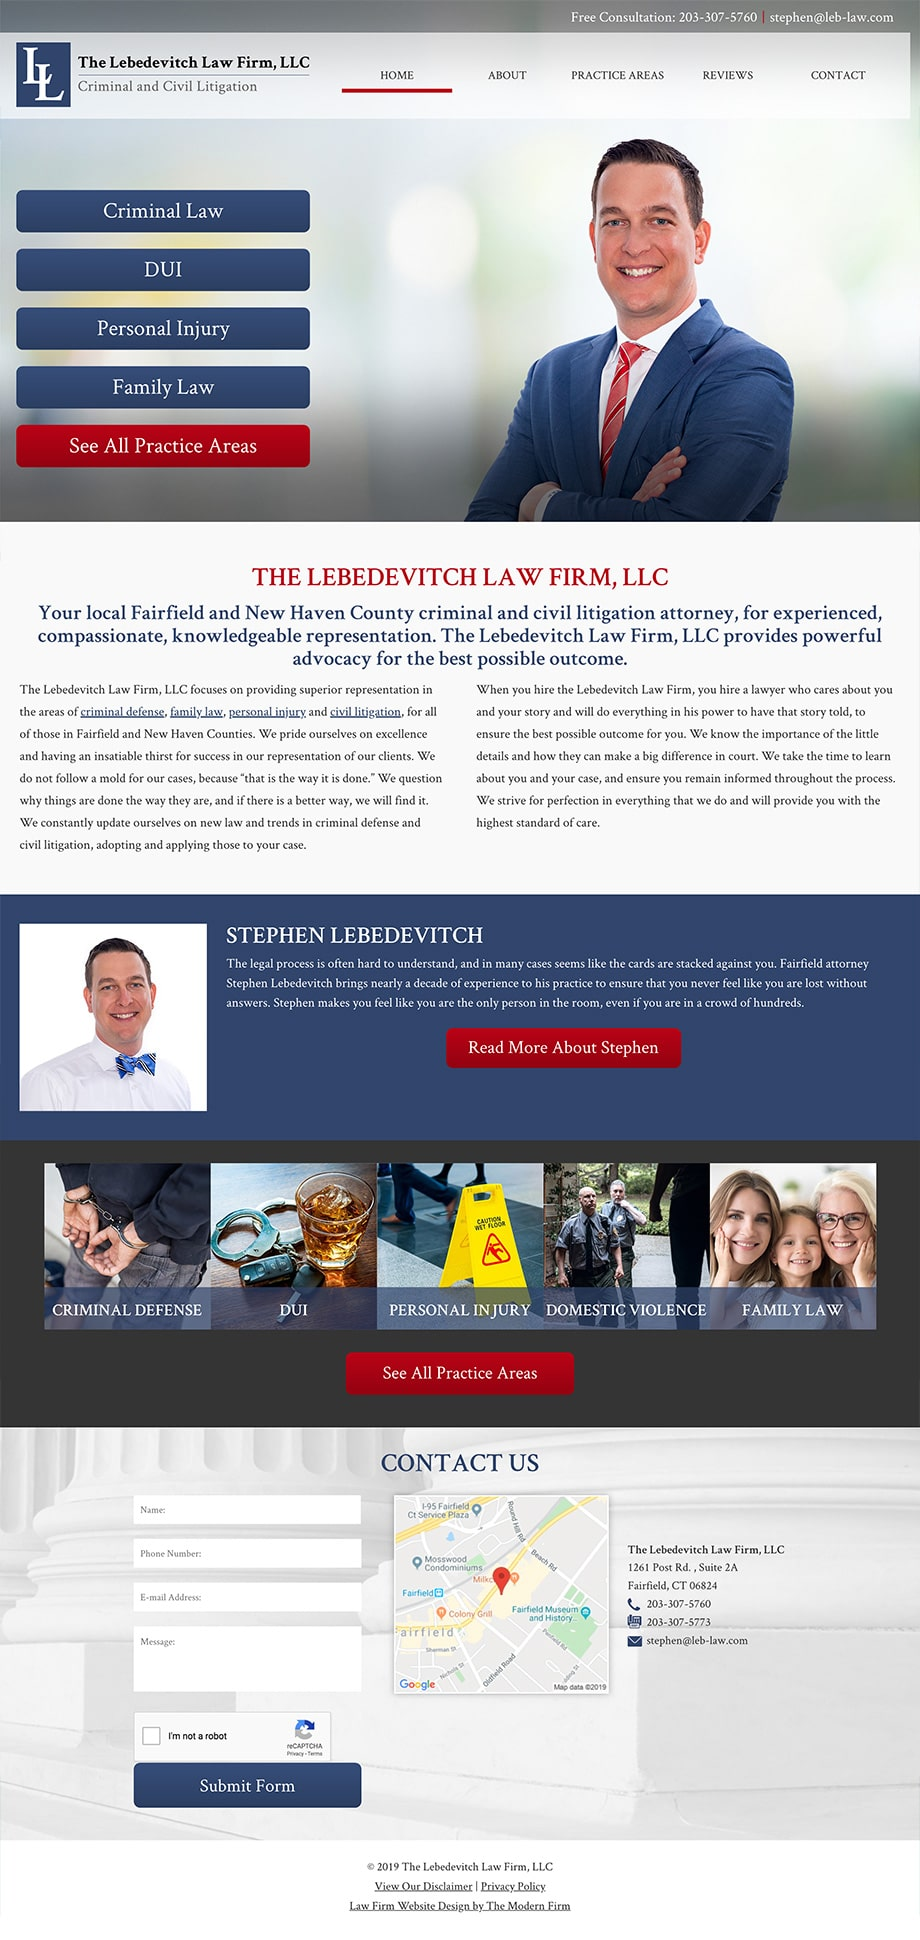 Law Firm Website Design for The Lebedevitch Law Firm, LLC